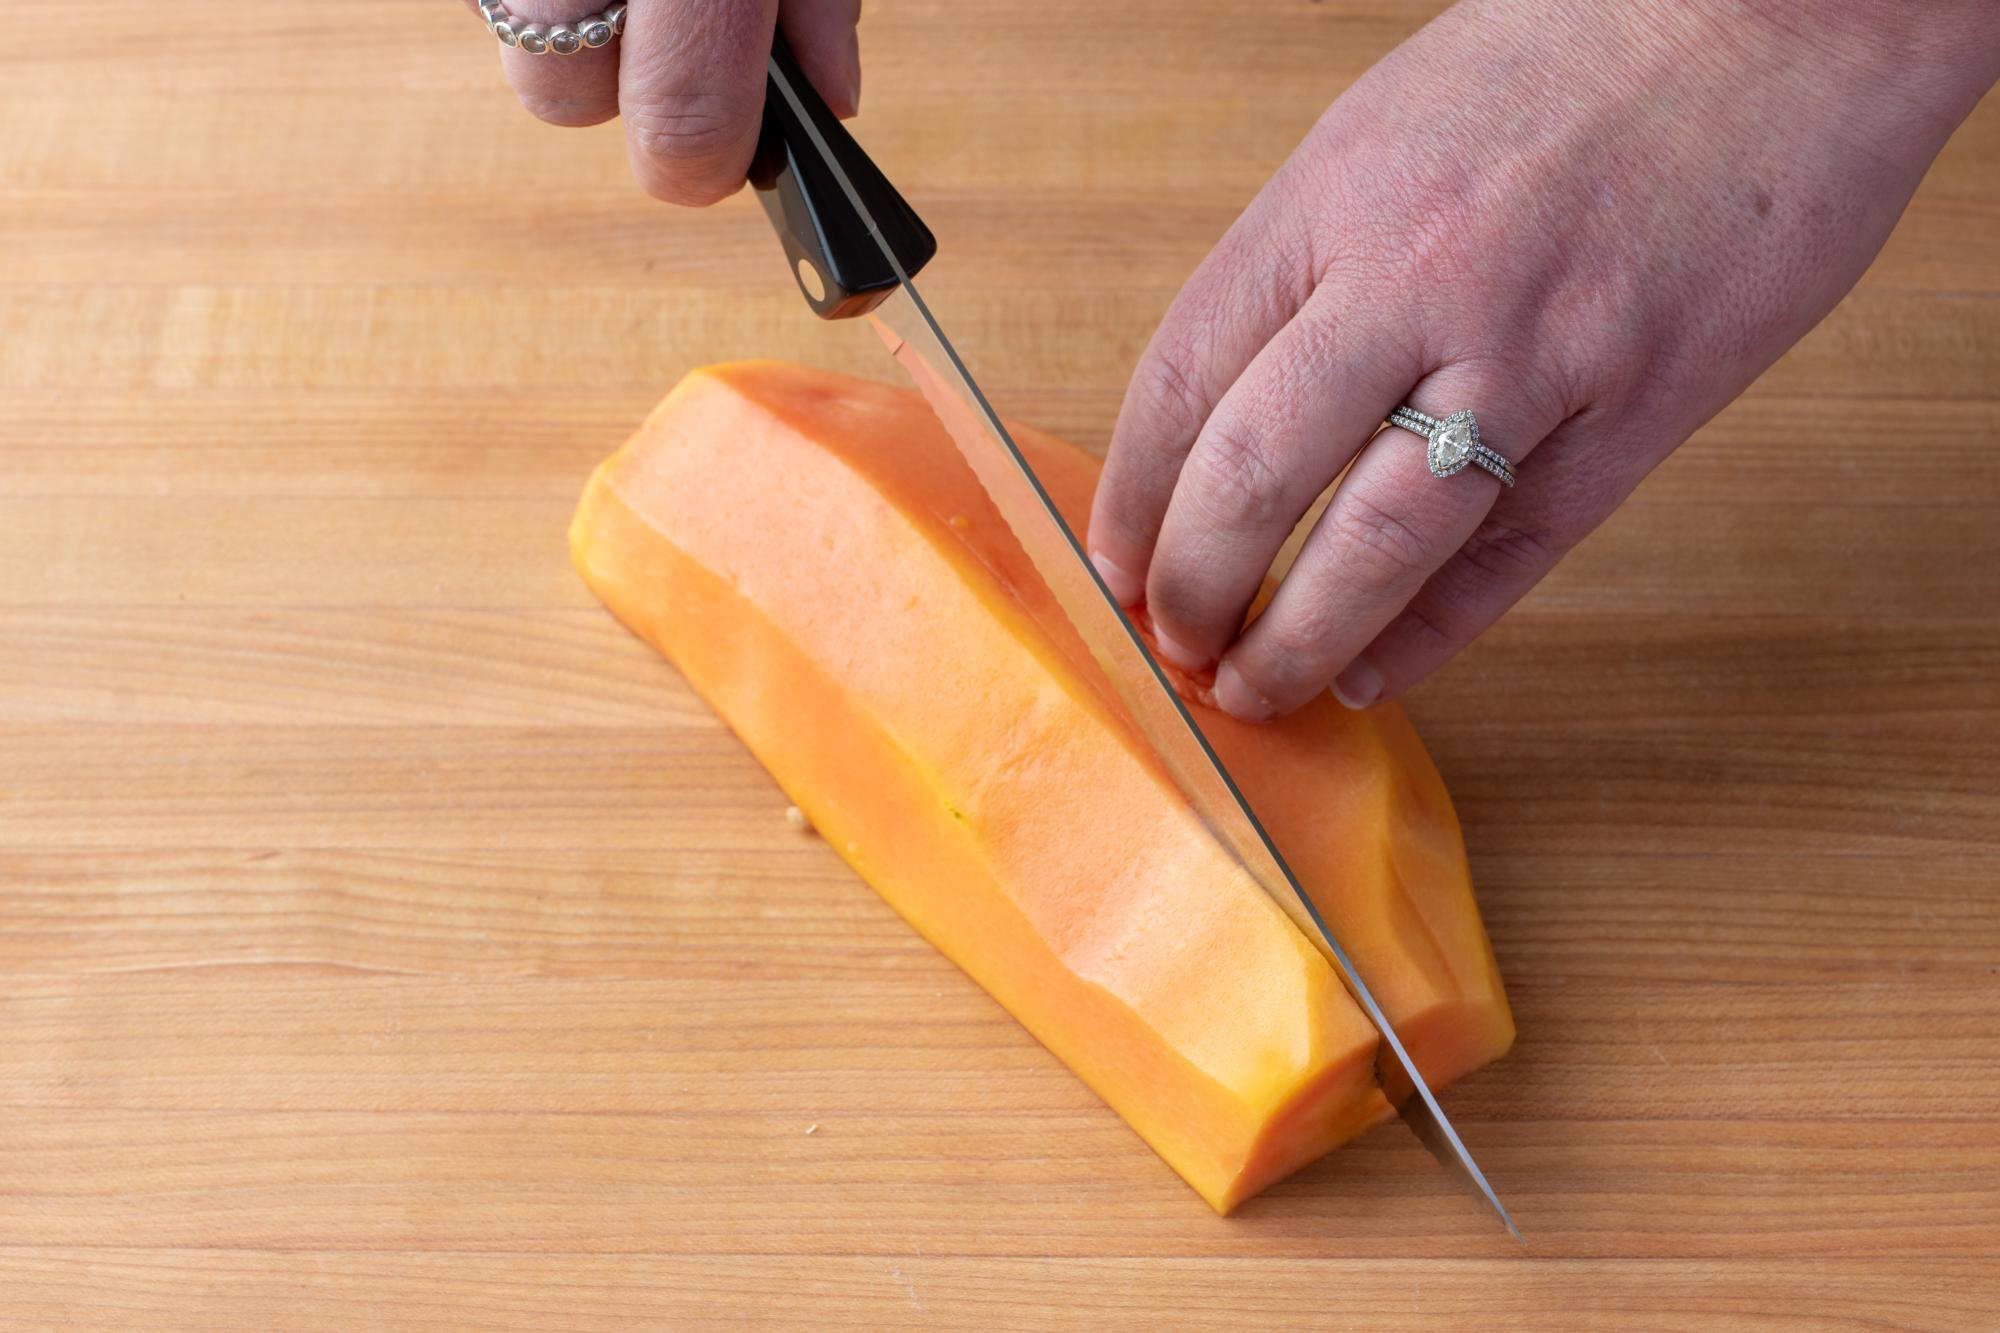 Cutting the papaya into quarters with the Petite Carver.